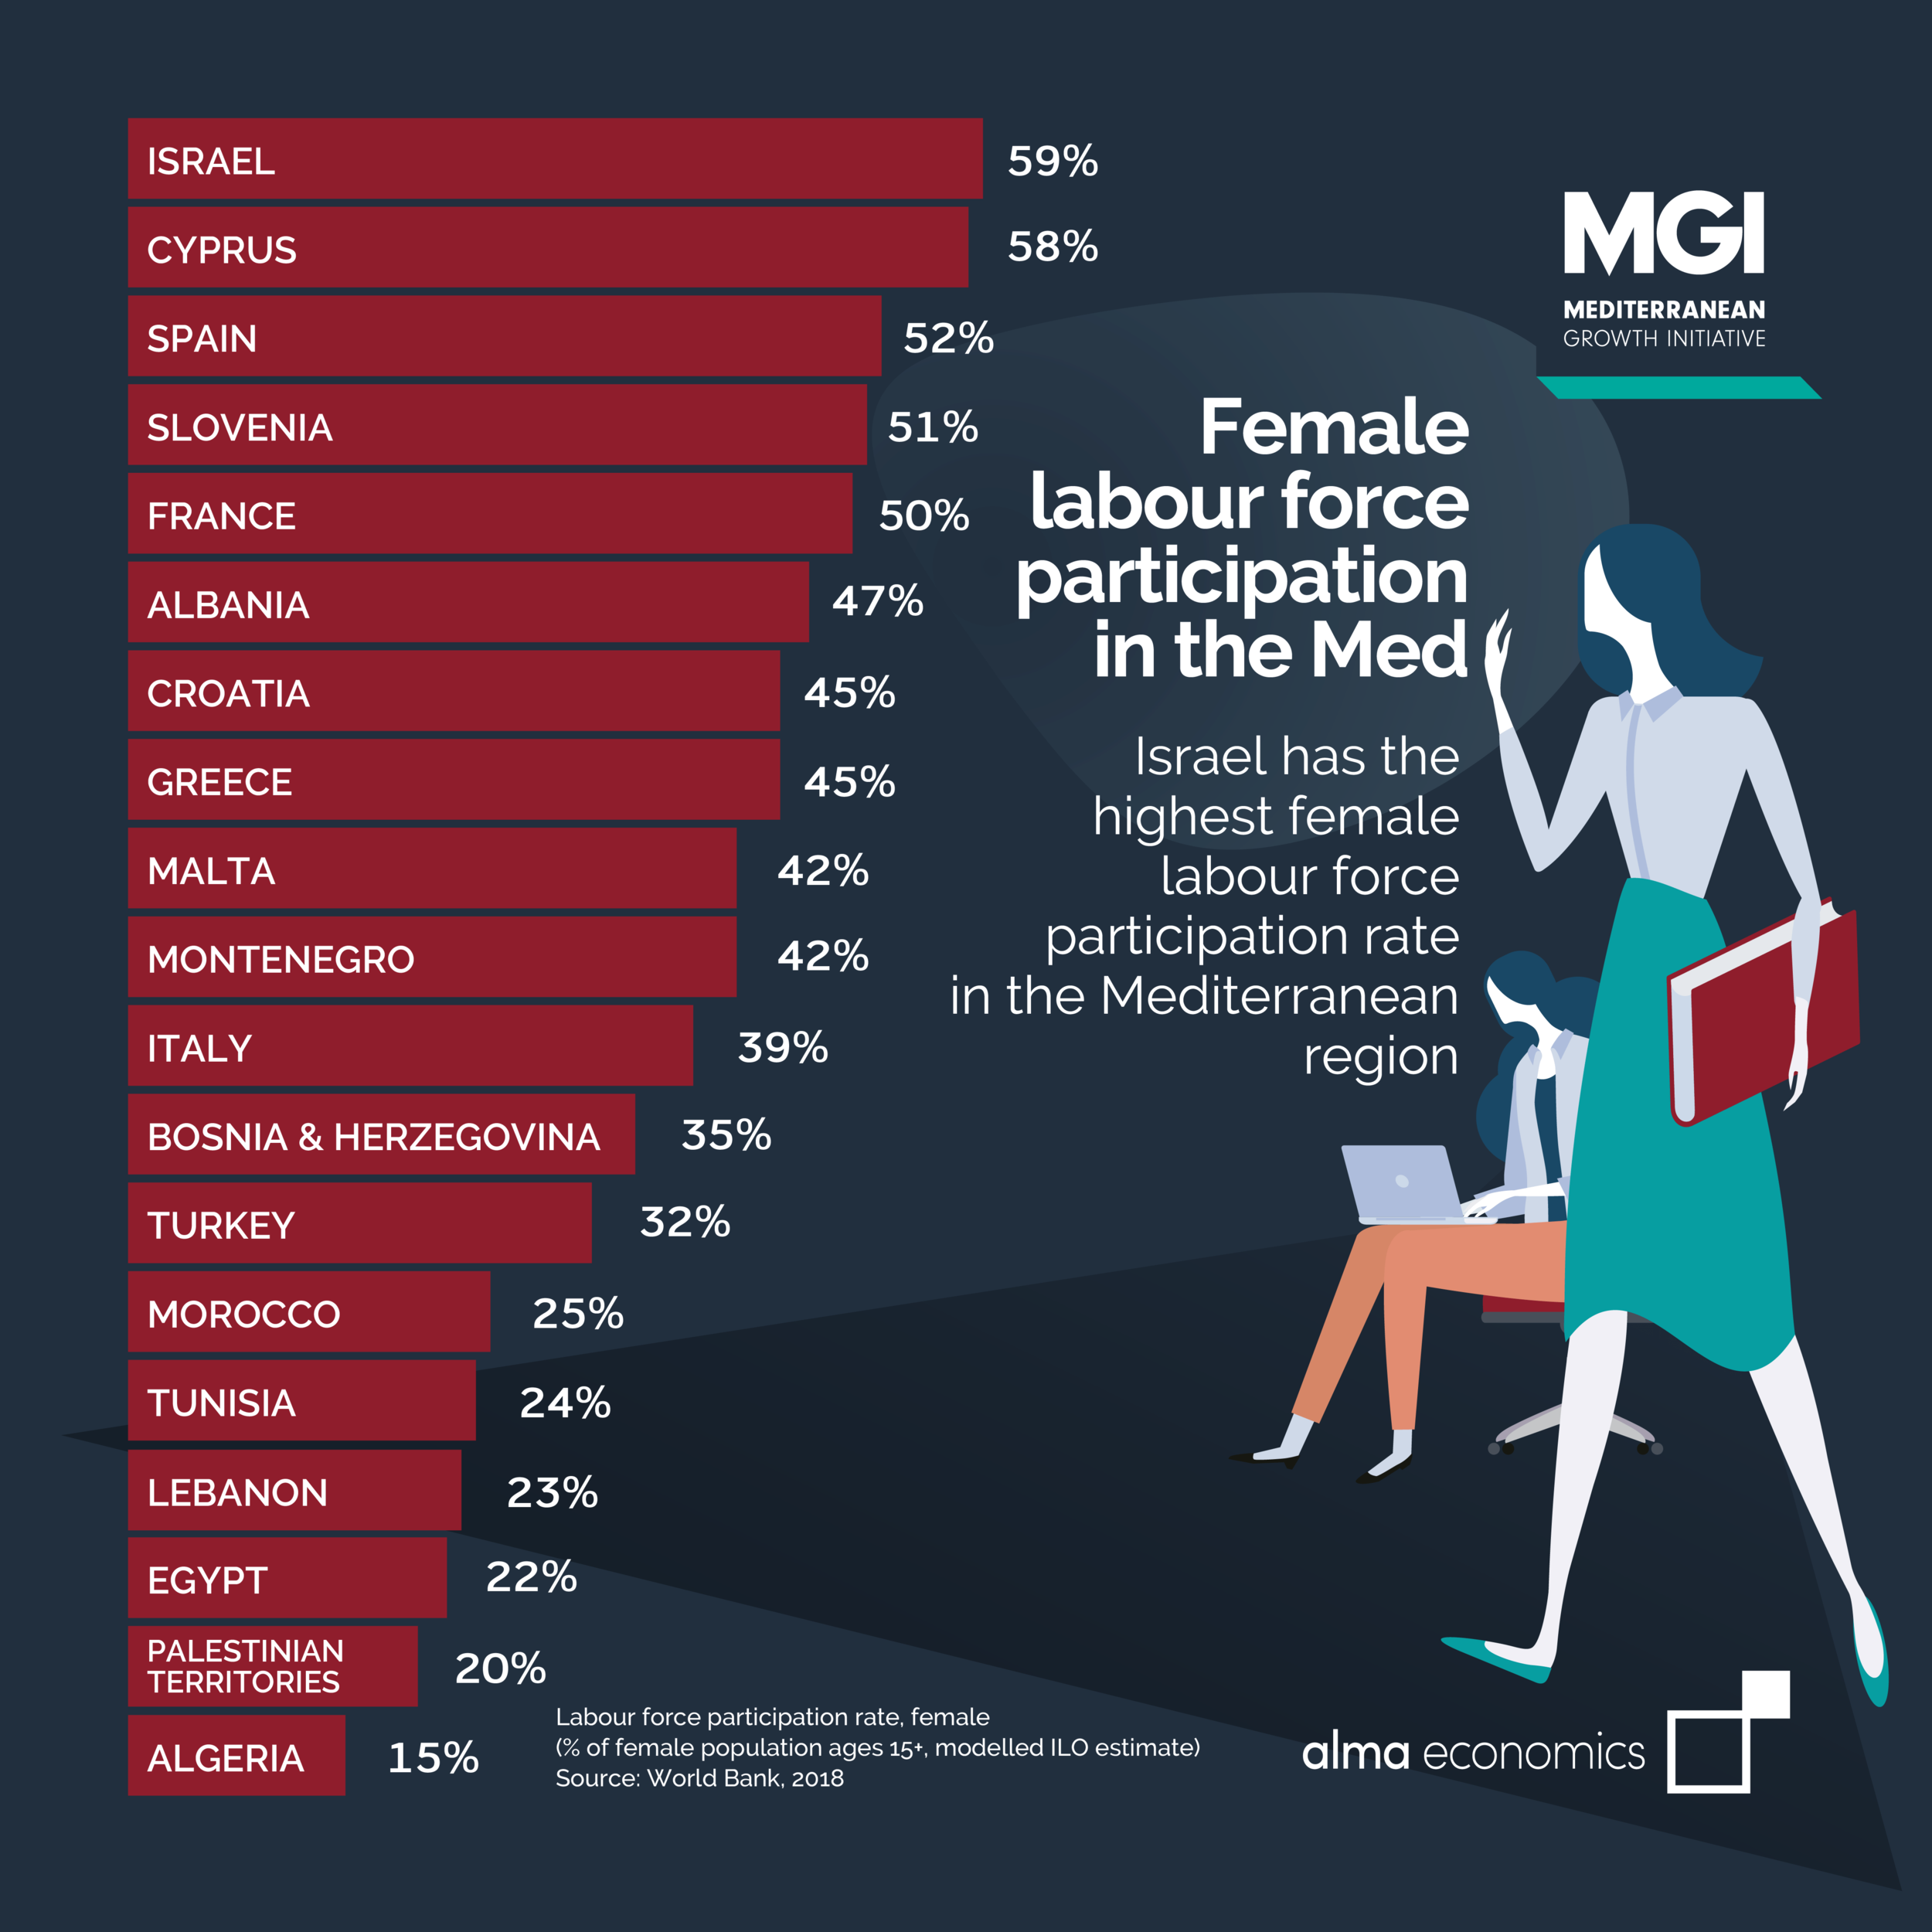 Female labour force participation in the Med - Israel has the highest female labour force participation rate in the Mediterranean region